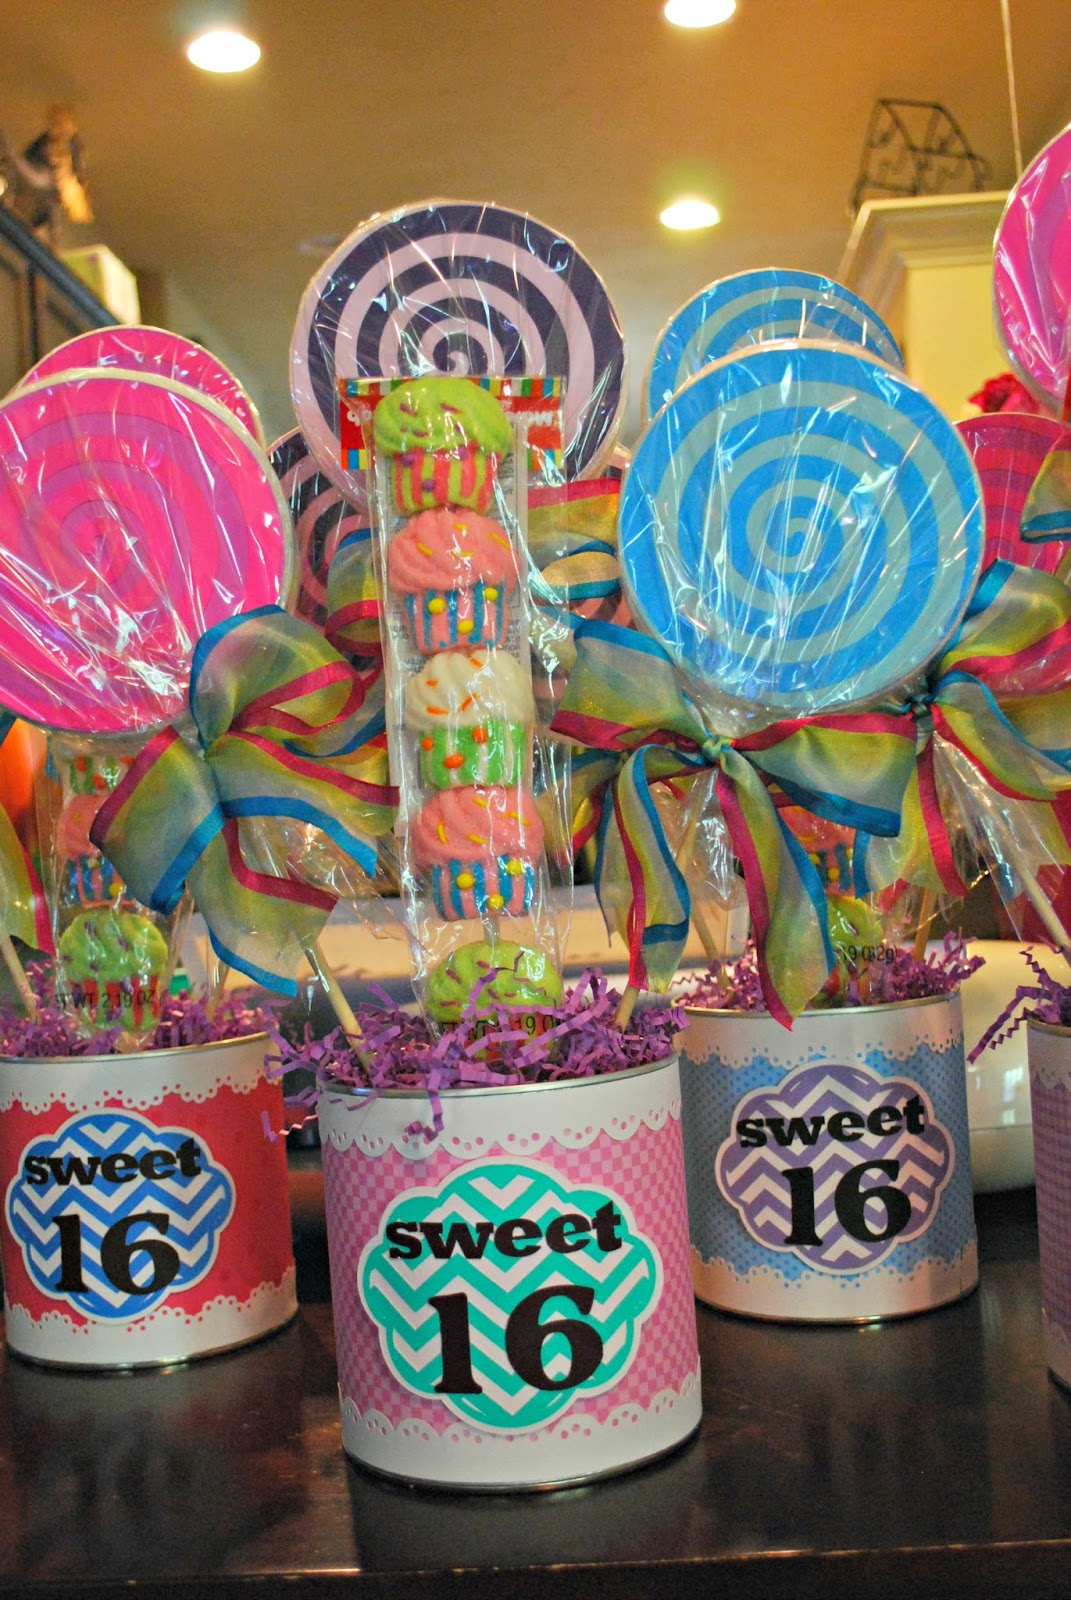 Sweet sixteen party ideas for girls page of